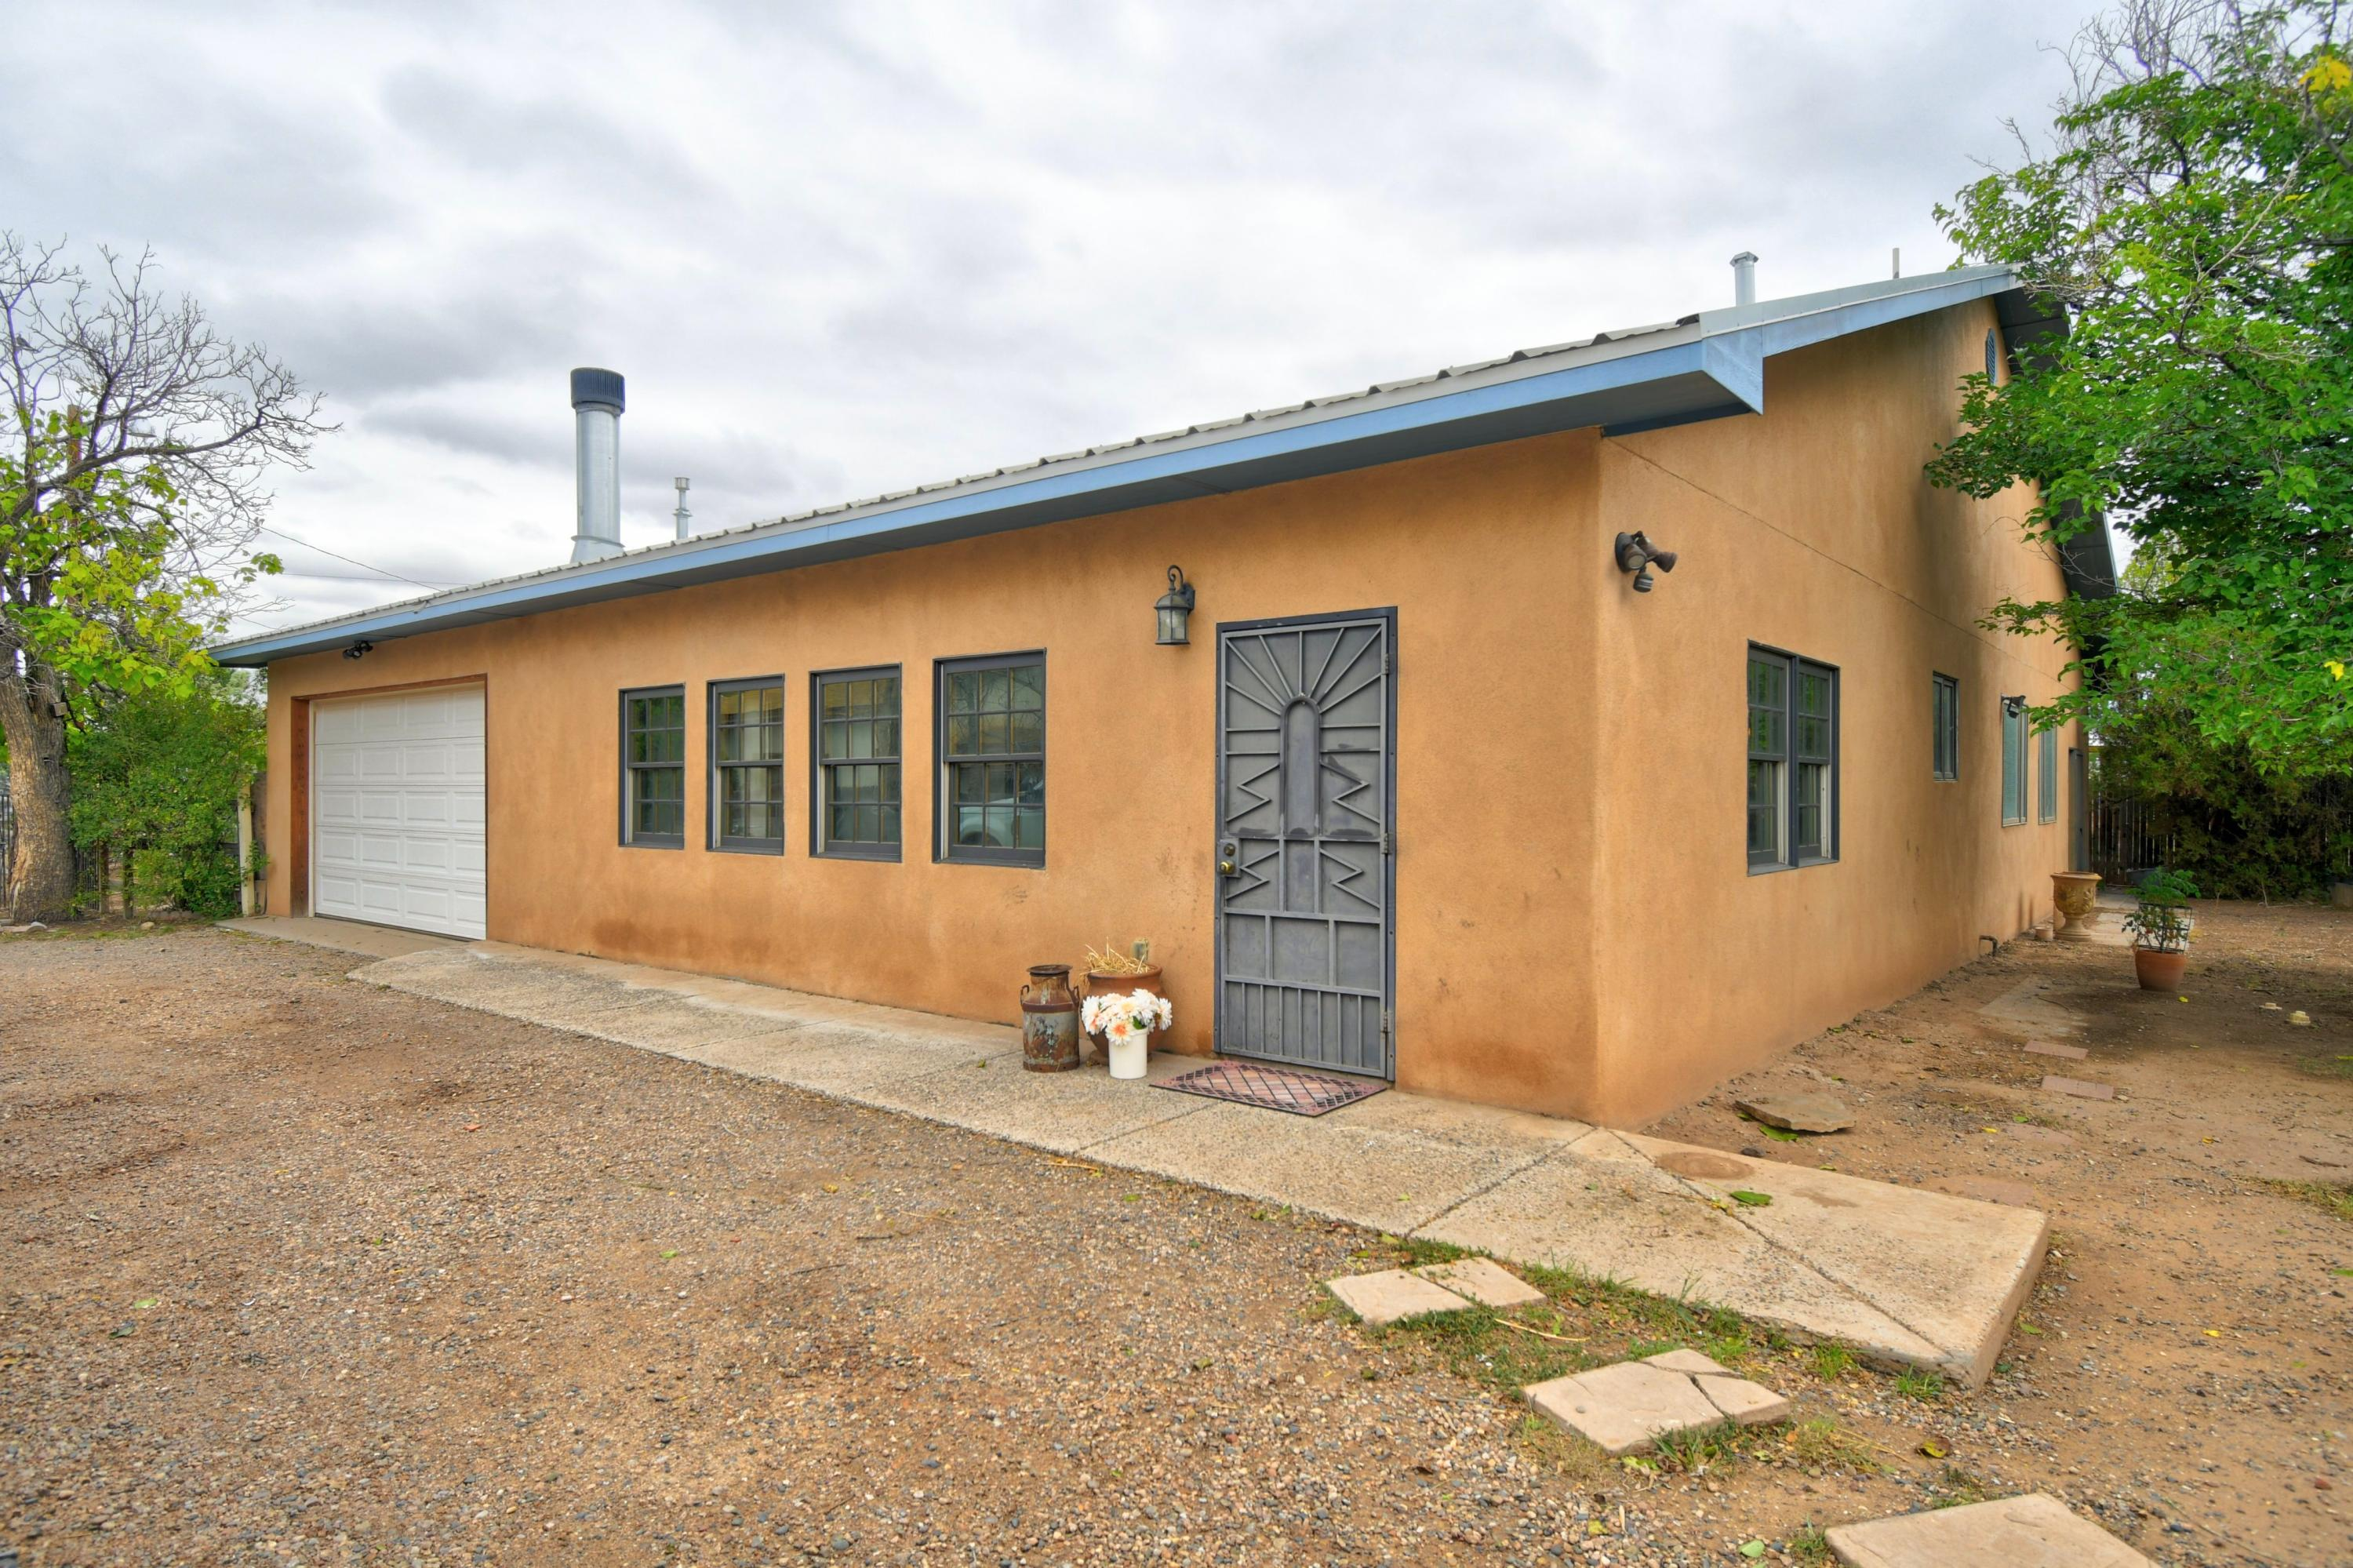 This is a must see if you are looking for an amazing multigenerational home on a quiet street in the North Valley with a fenced 1/2 acre lot! The house has 3 or 4 bedrooms and the updated casita has 2 or 3 additional bedrooms with a total of 4 bathrooms. Both home and casita have refrigerated air, light and bright open floorplans that are perfect for a growing family. The casita was completed updated 11 years ago and includes granite countertops, soft close drawers, gas stove, Saltillo tile, hand plastered walls and latilla ceiling. The main house has hardwood floors, and a beautiful wood burning fireplace in the family room. The updated kitchen in the house has a huge walk in pantry and lovely formal dining room, ideal for the chef in the family.